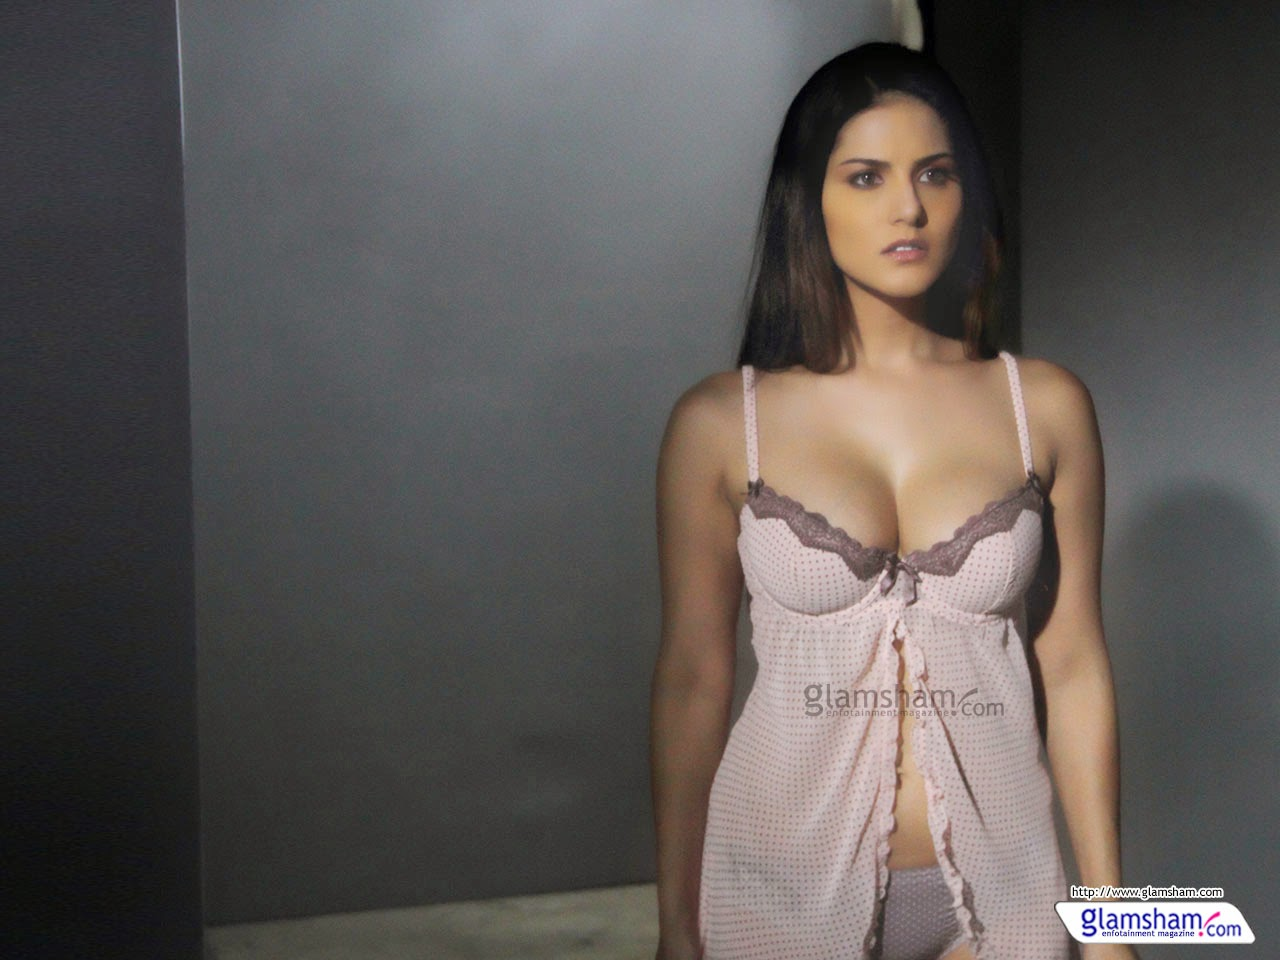 Bollywood Actress Sunny Leone Full Hd Hot Photo Gallery -7431